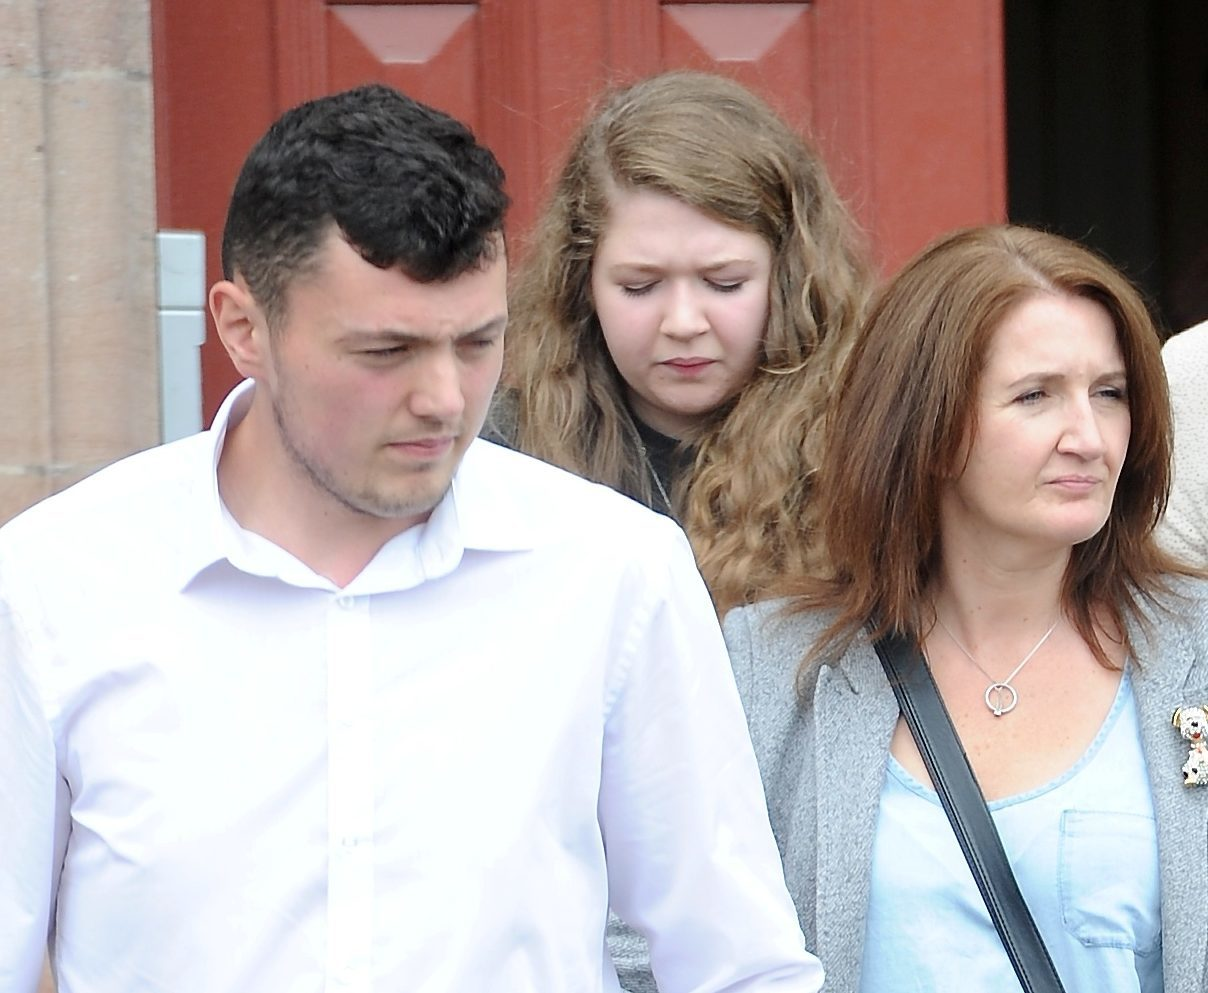 David White leaves Inverness Sheriff Court following sentencing accompanied by Debbie Gillam